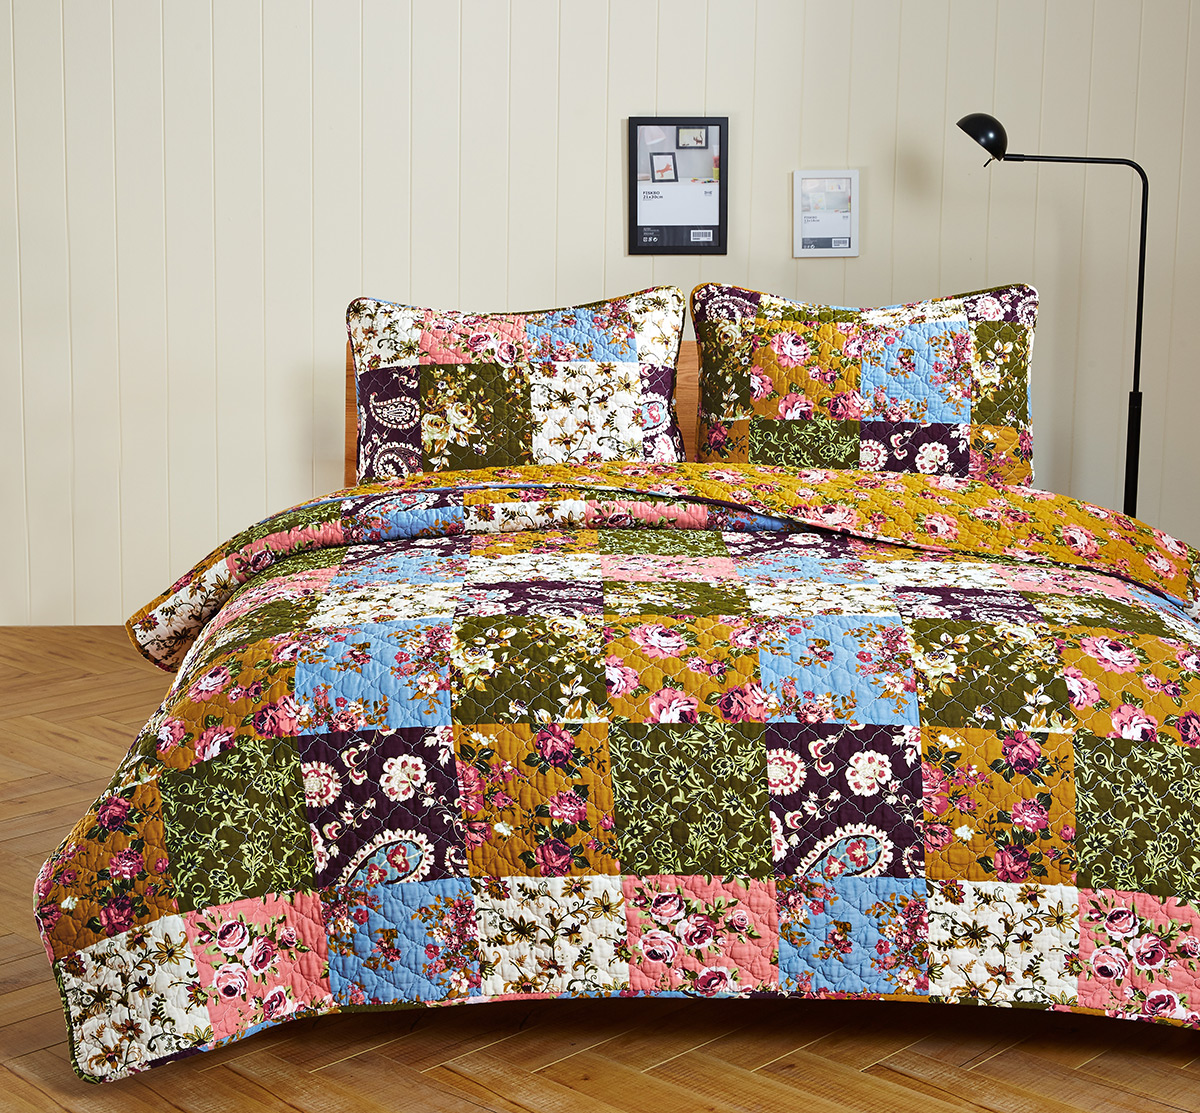 Antique Bloom Quilt Set, by Olivia's Heartland